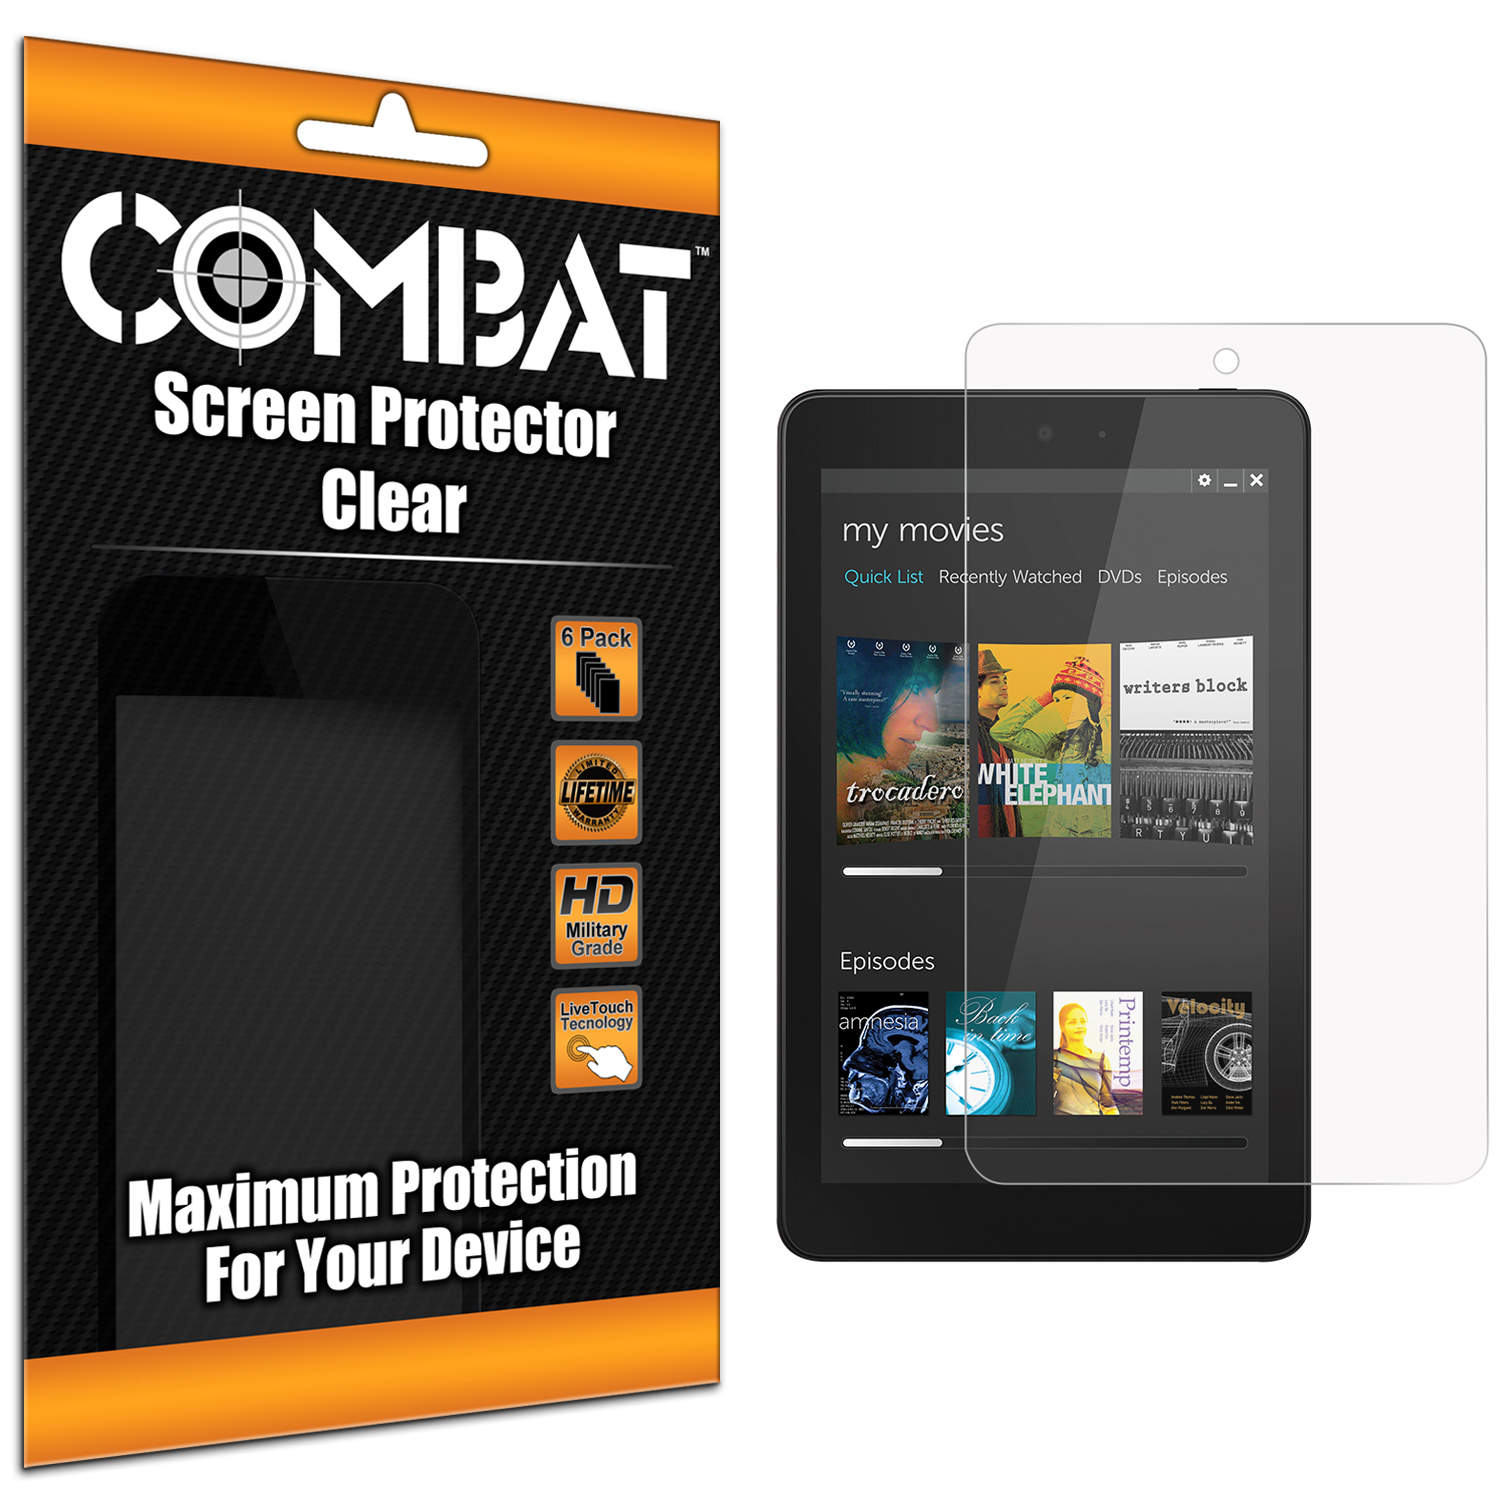 Dell Venue 8 2014 Clear Combat 6 Pack HD Clear Screen Protector